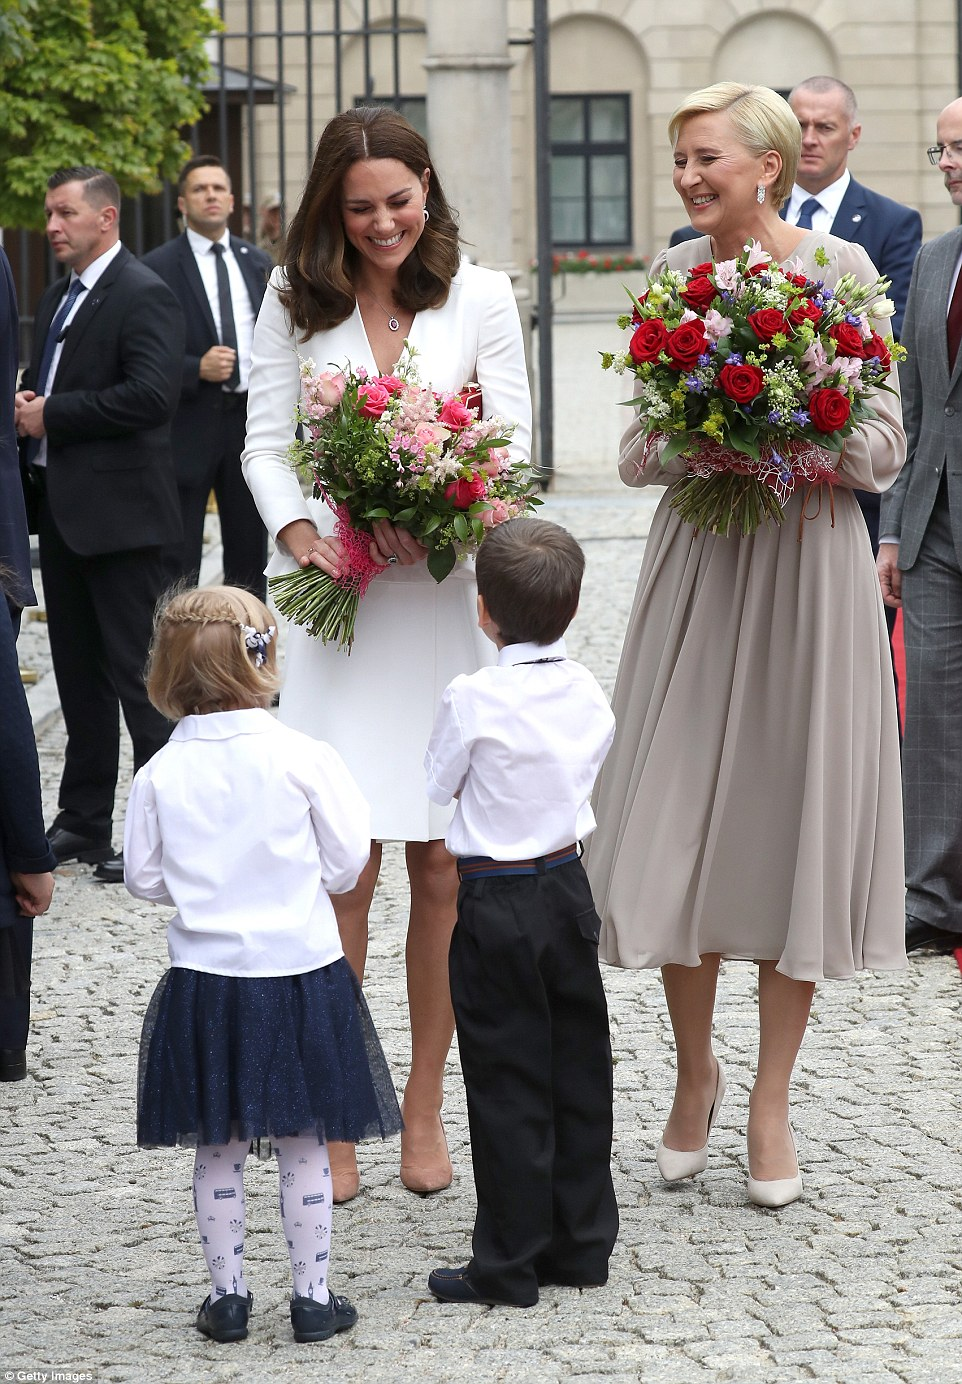 Kate and First Lady Agata Kornhauser-Duda were presented with bouquets by two young wellwishers outside the presidential palace in Warsaw